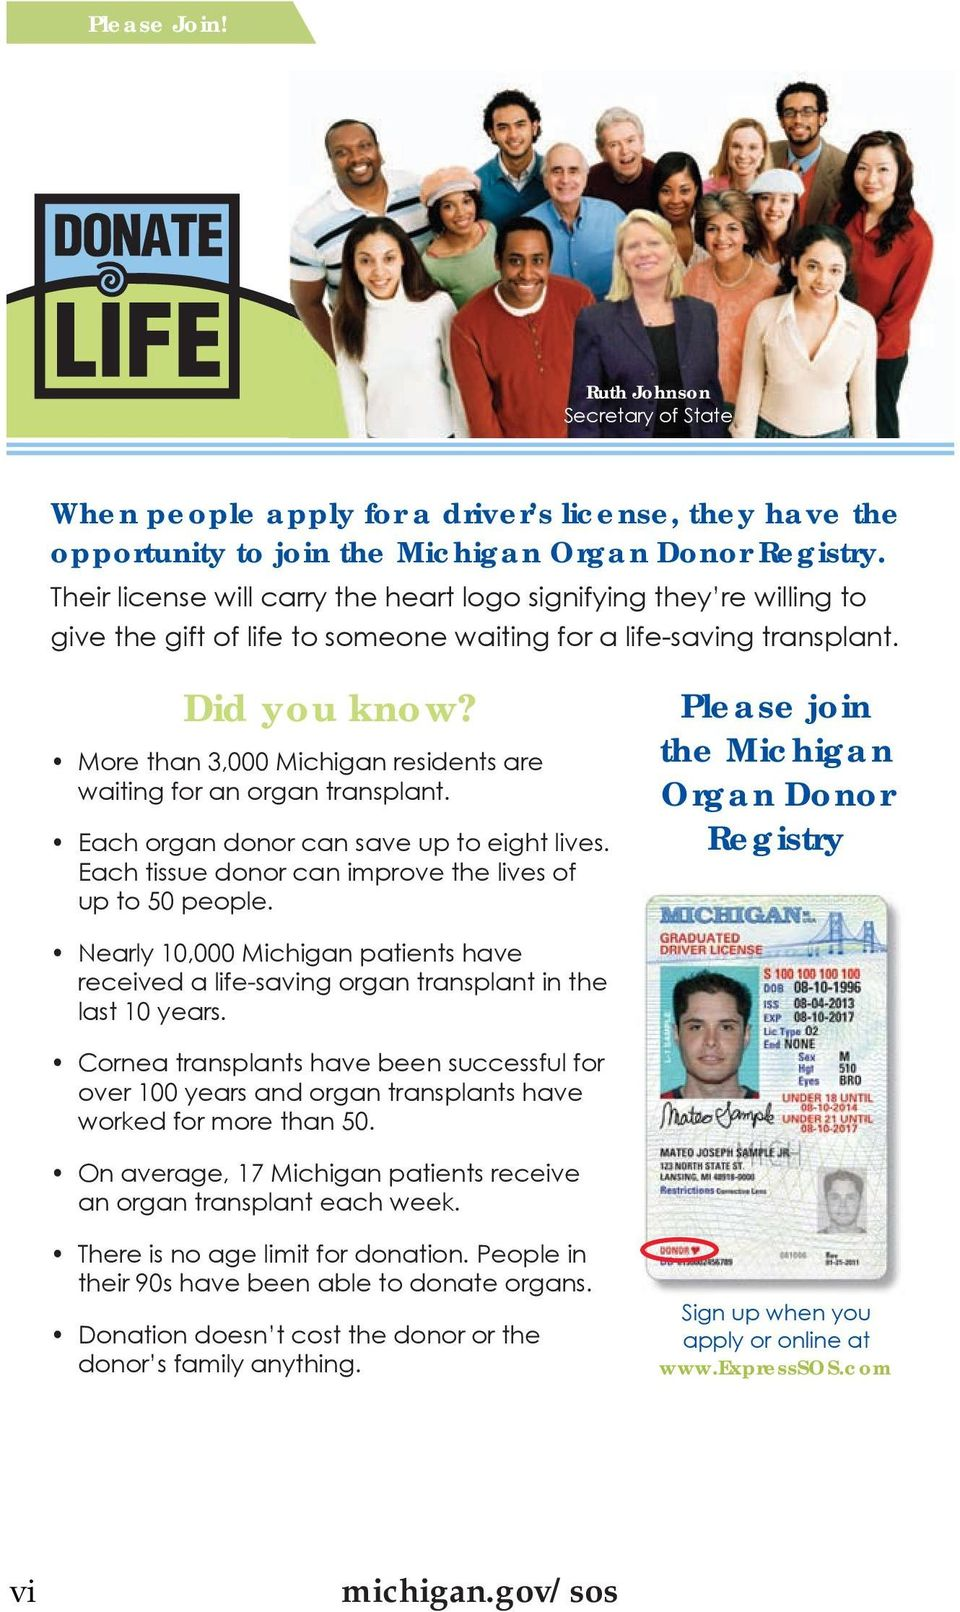 More than 3,000 Michigan residents are waiting for an organ transplant. Each organ donor can save up to eight lives. Each tissue donor can improve the lives of up to 50 people.